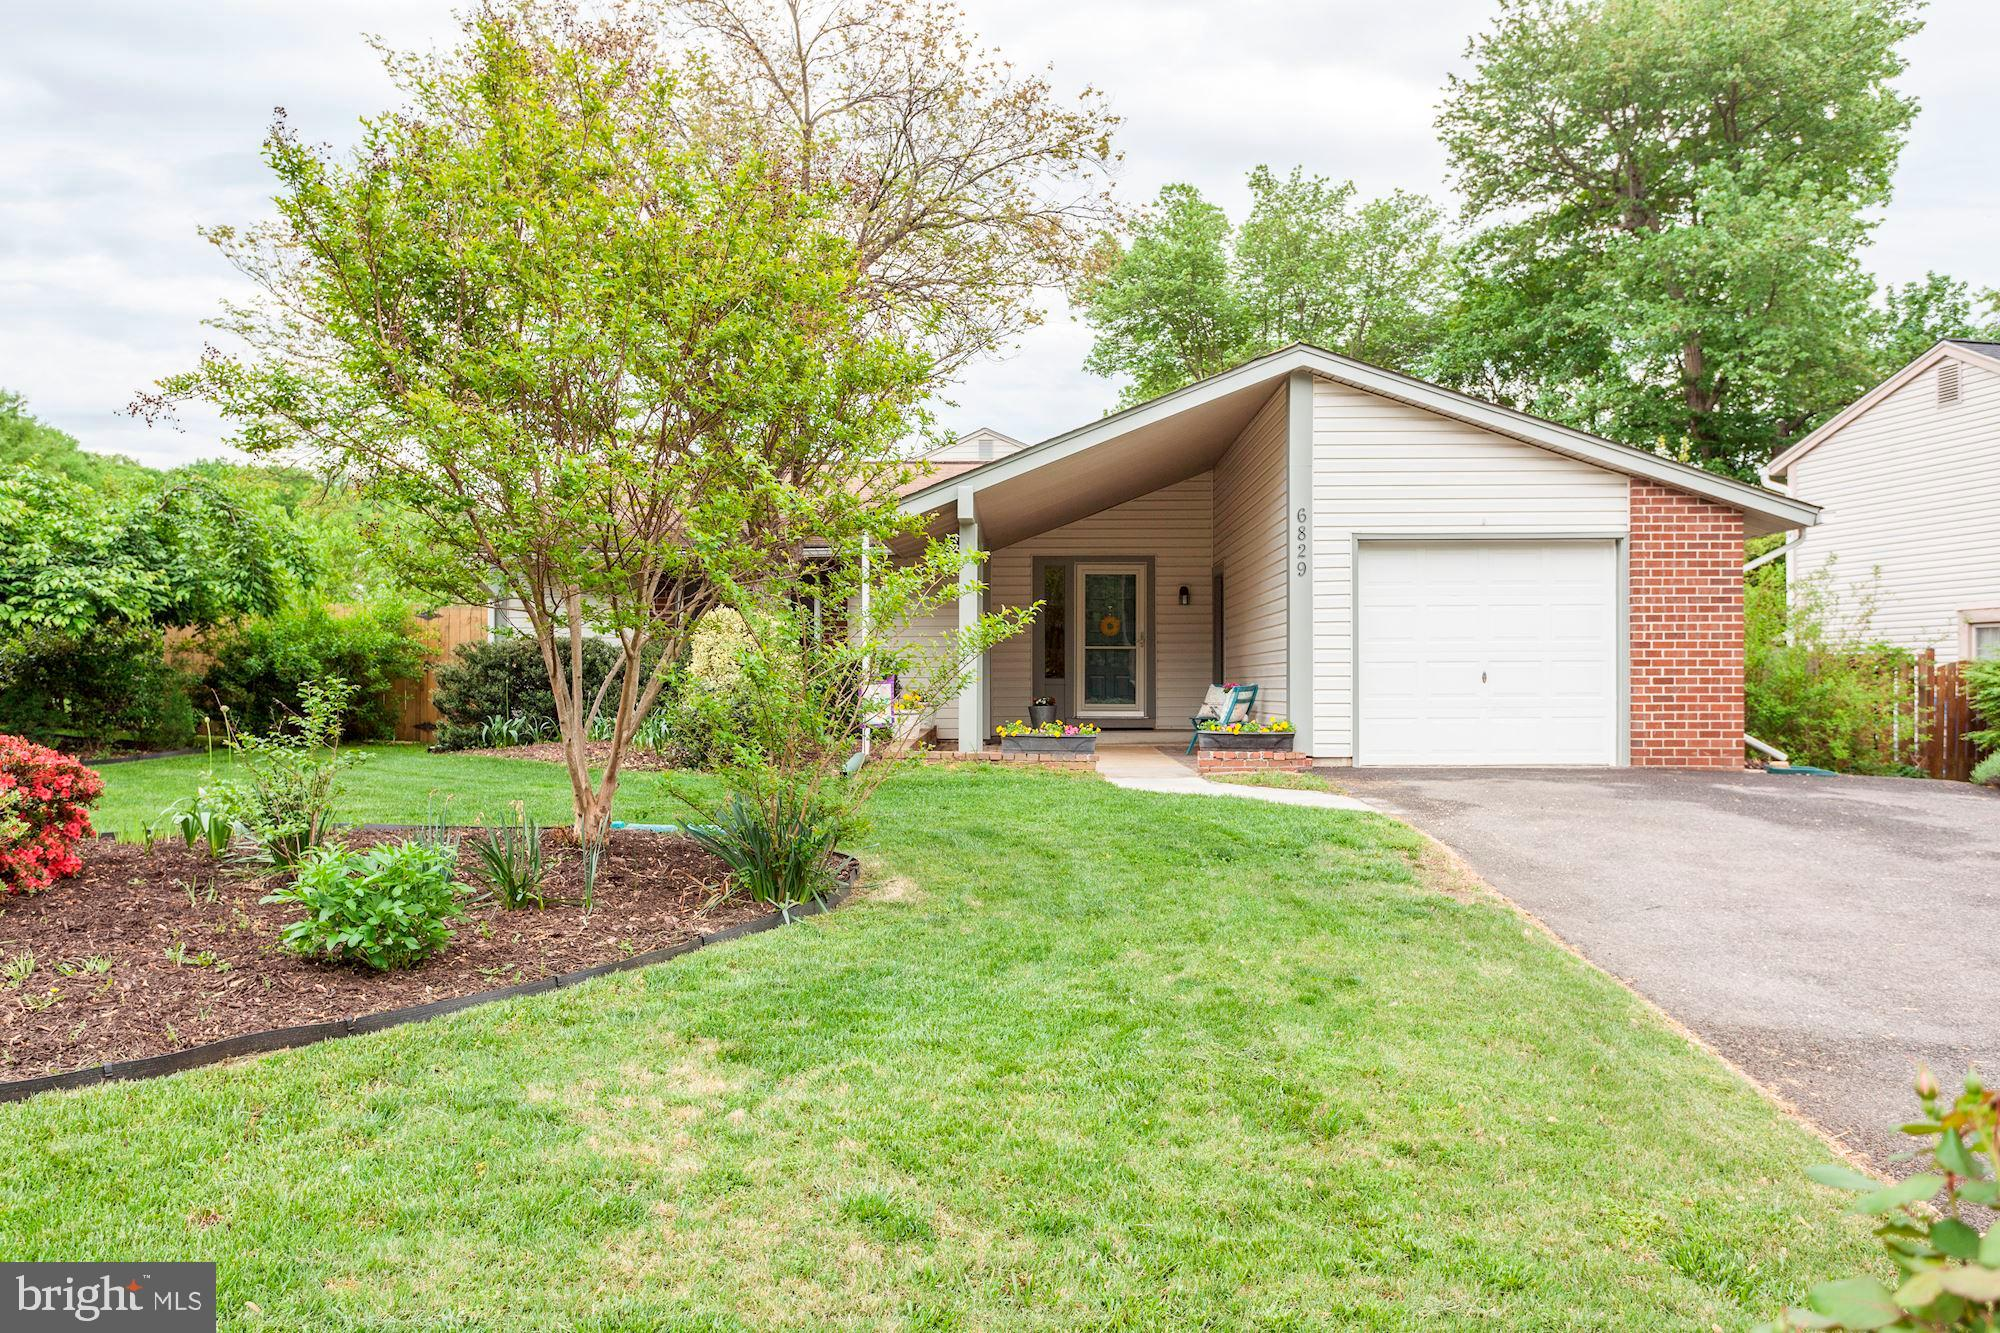 Open Sunday, 5/5 12:00 - 3:00 PM.  Priced below comps! Move-in-ready contemporary 1-level rambler on 1/4 acre corner lot in popular Stoneybrooke. Hardwood floors throughout, neutral paint, gas cooking, cherry cabinets, stainless steel appliances, and new granite counters. Newer windows, front and sliding door, and garage door. Gazebo and playground convey.  Fenced rear yard.  Enjoy peaches, pears, blueberries and rosemary from your very own yard! Enclosed garage. Driveway expanded for additional parking. 1-year HMS home warranty for the buyer.  Minutes to metro, Kingstowne, 495, 395, 95, RT 1, Belvoir. Please view the 3D virtual tour to see the layout. Chimney conveys as-is (needs a flue liner). Sellers request to review any offer on Thursday, May 9th.